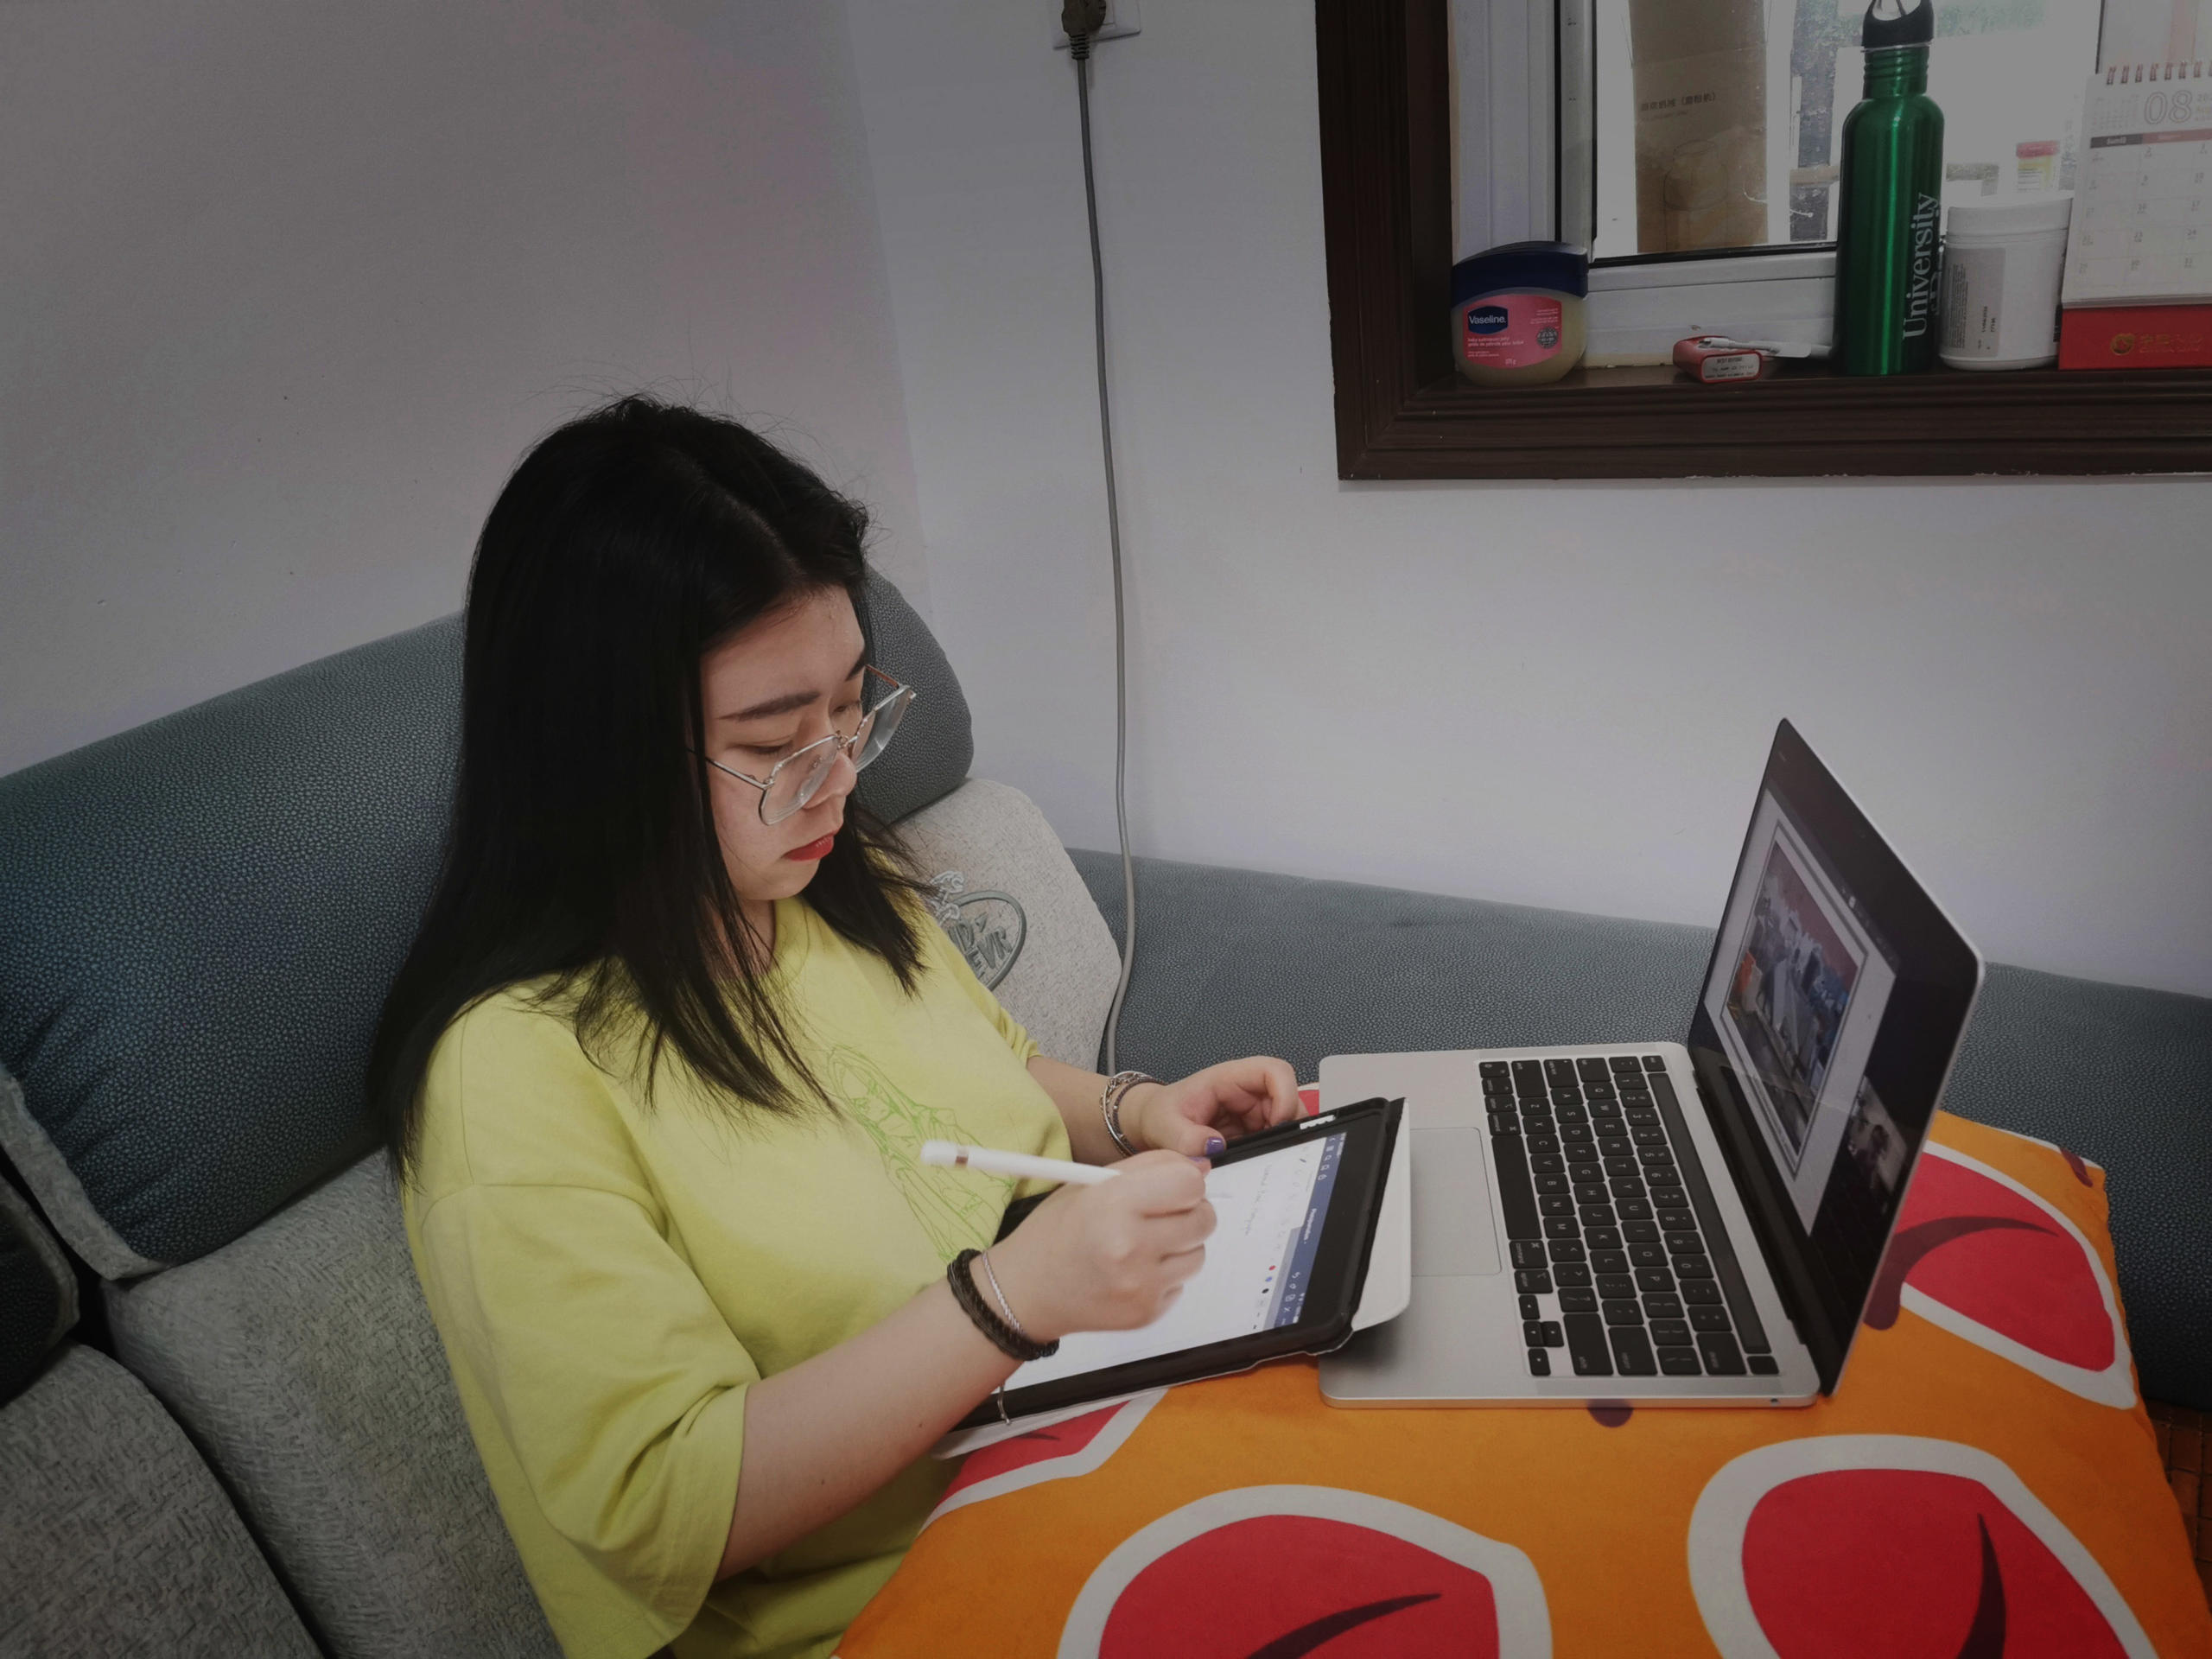 Xiyu managed to keep herself busy during her quarantine period. Part of her daily routine involved attending university classes online. Image credit: Xiyu Zha